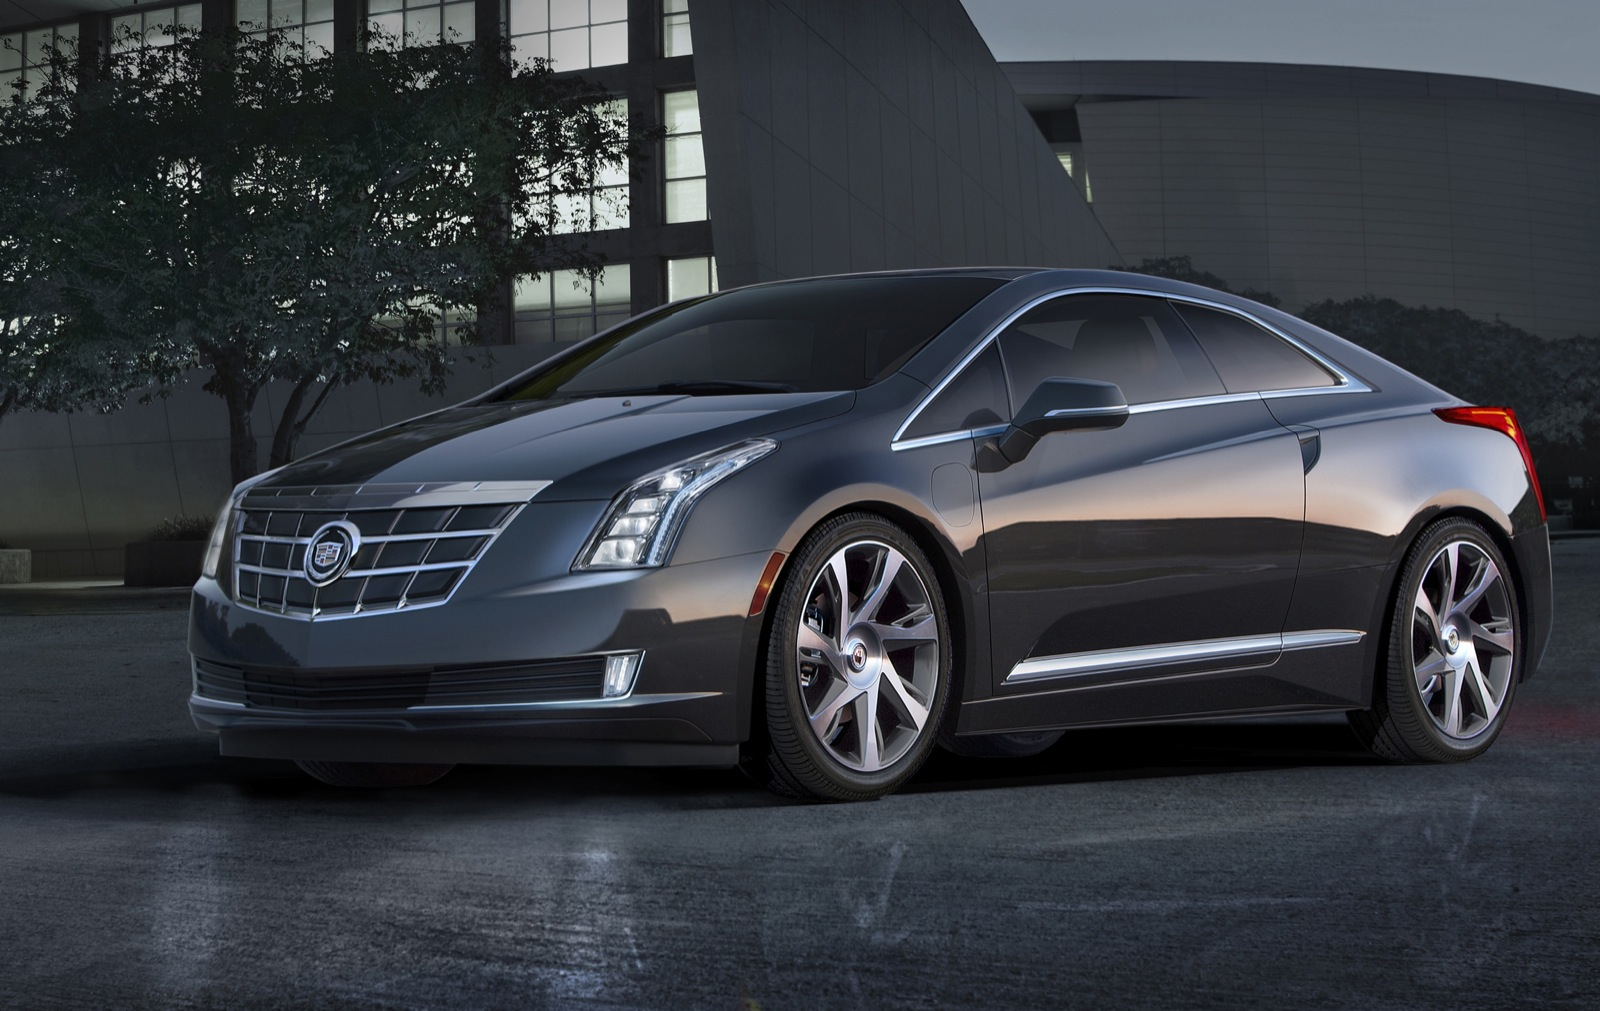 Delightful 2014 Cadillac ELR Review, Ratings, Specs, Prices, And Photos   The Car  Connection